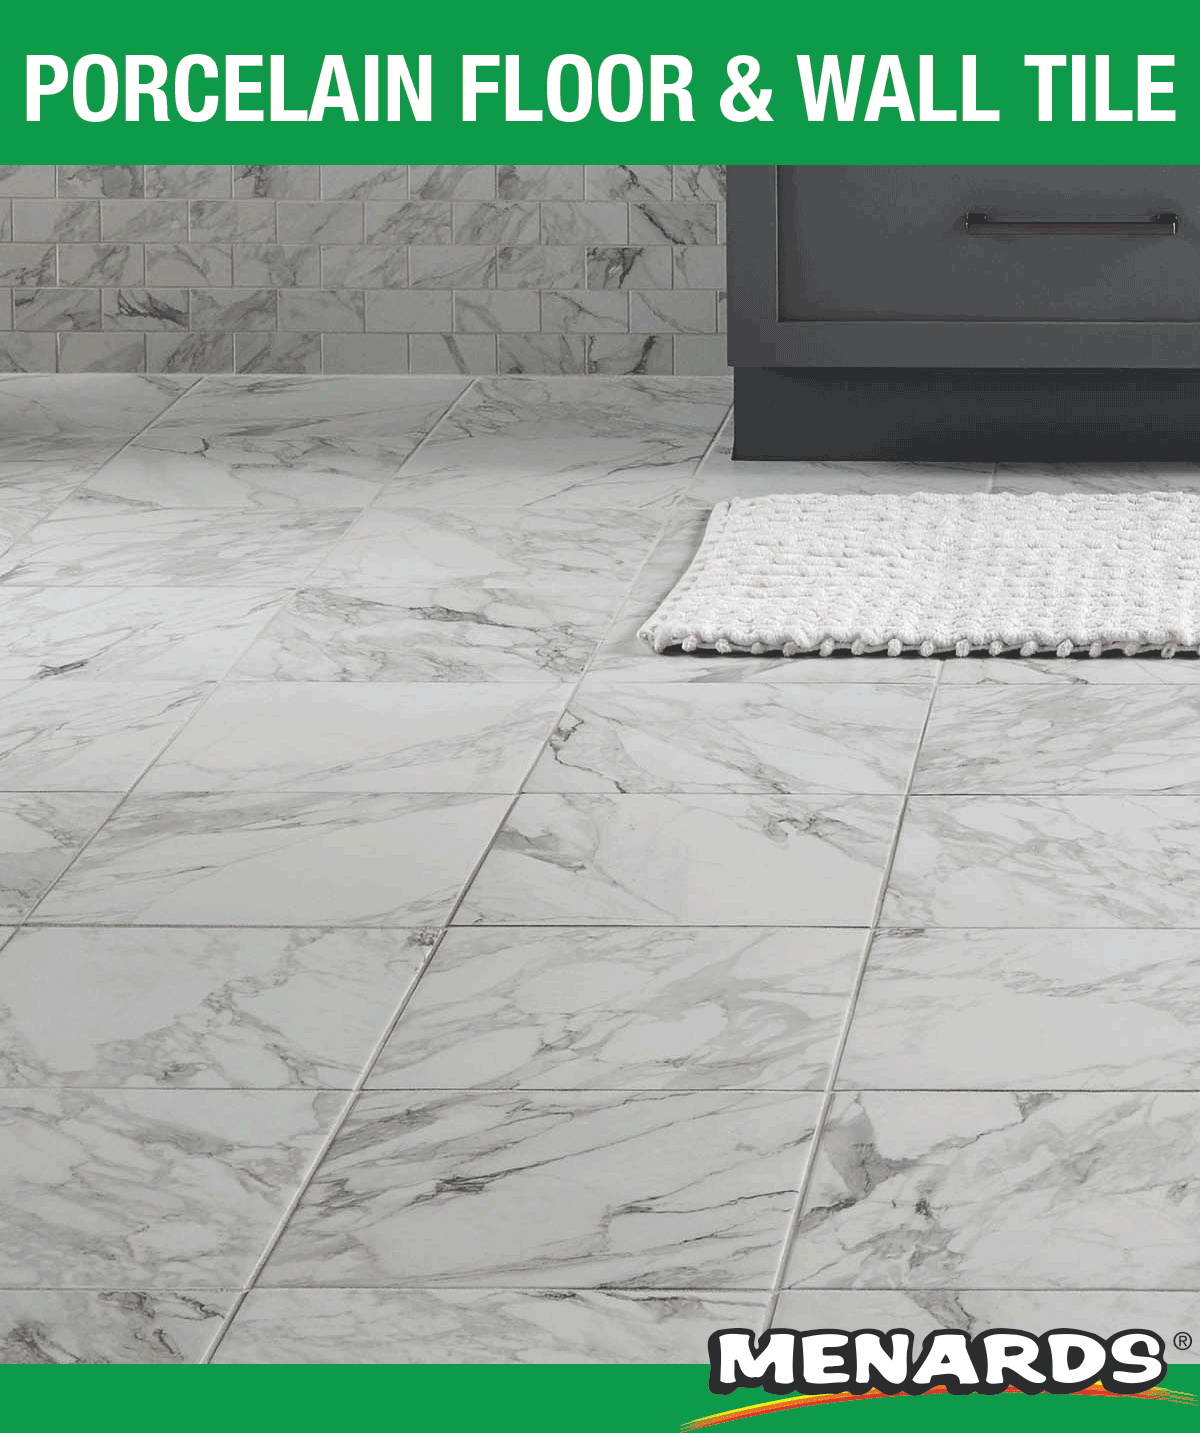 Mohawk Cleanprotect Bianco Marble 12 X 12 Porcelain Floor And Wall Tile In 2020 Porcelain Flooring Floor And Wall Tile Wall Tiles